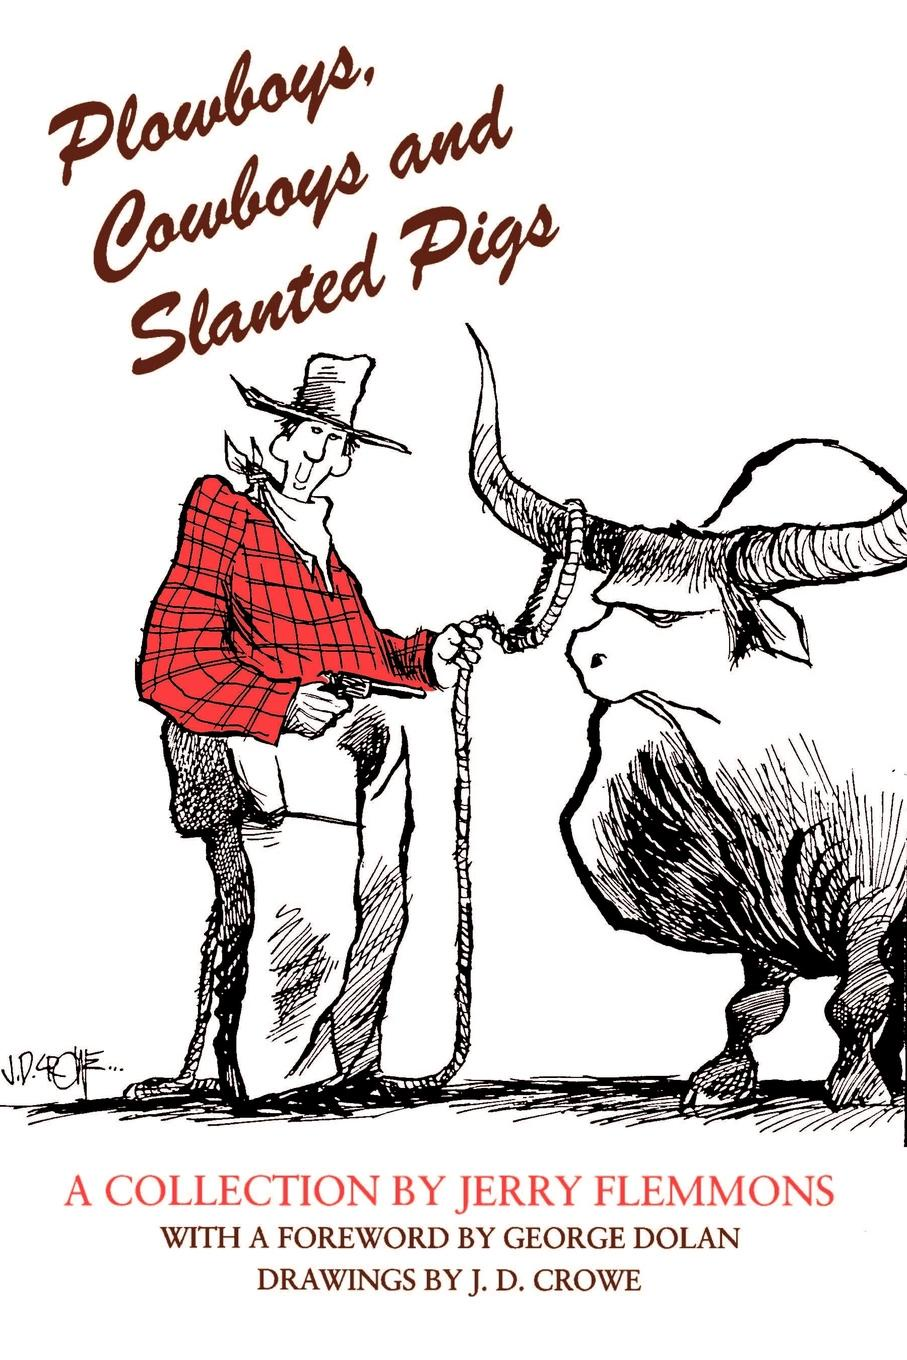 Jerry Flemmons Plowboys, Cowboys and Slanted Pigs pigs